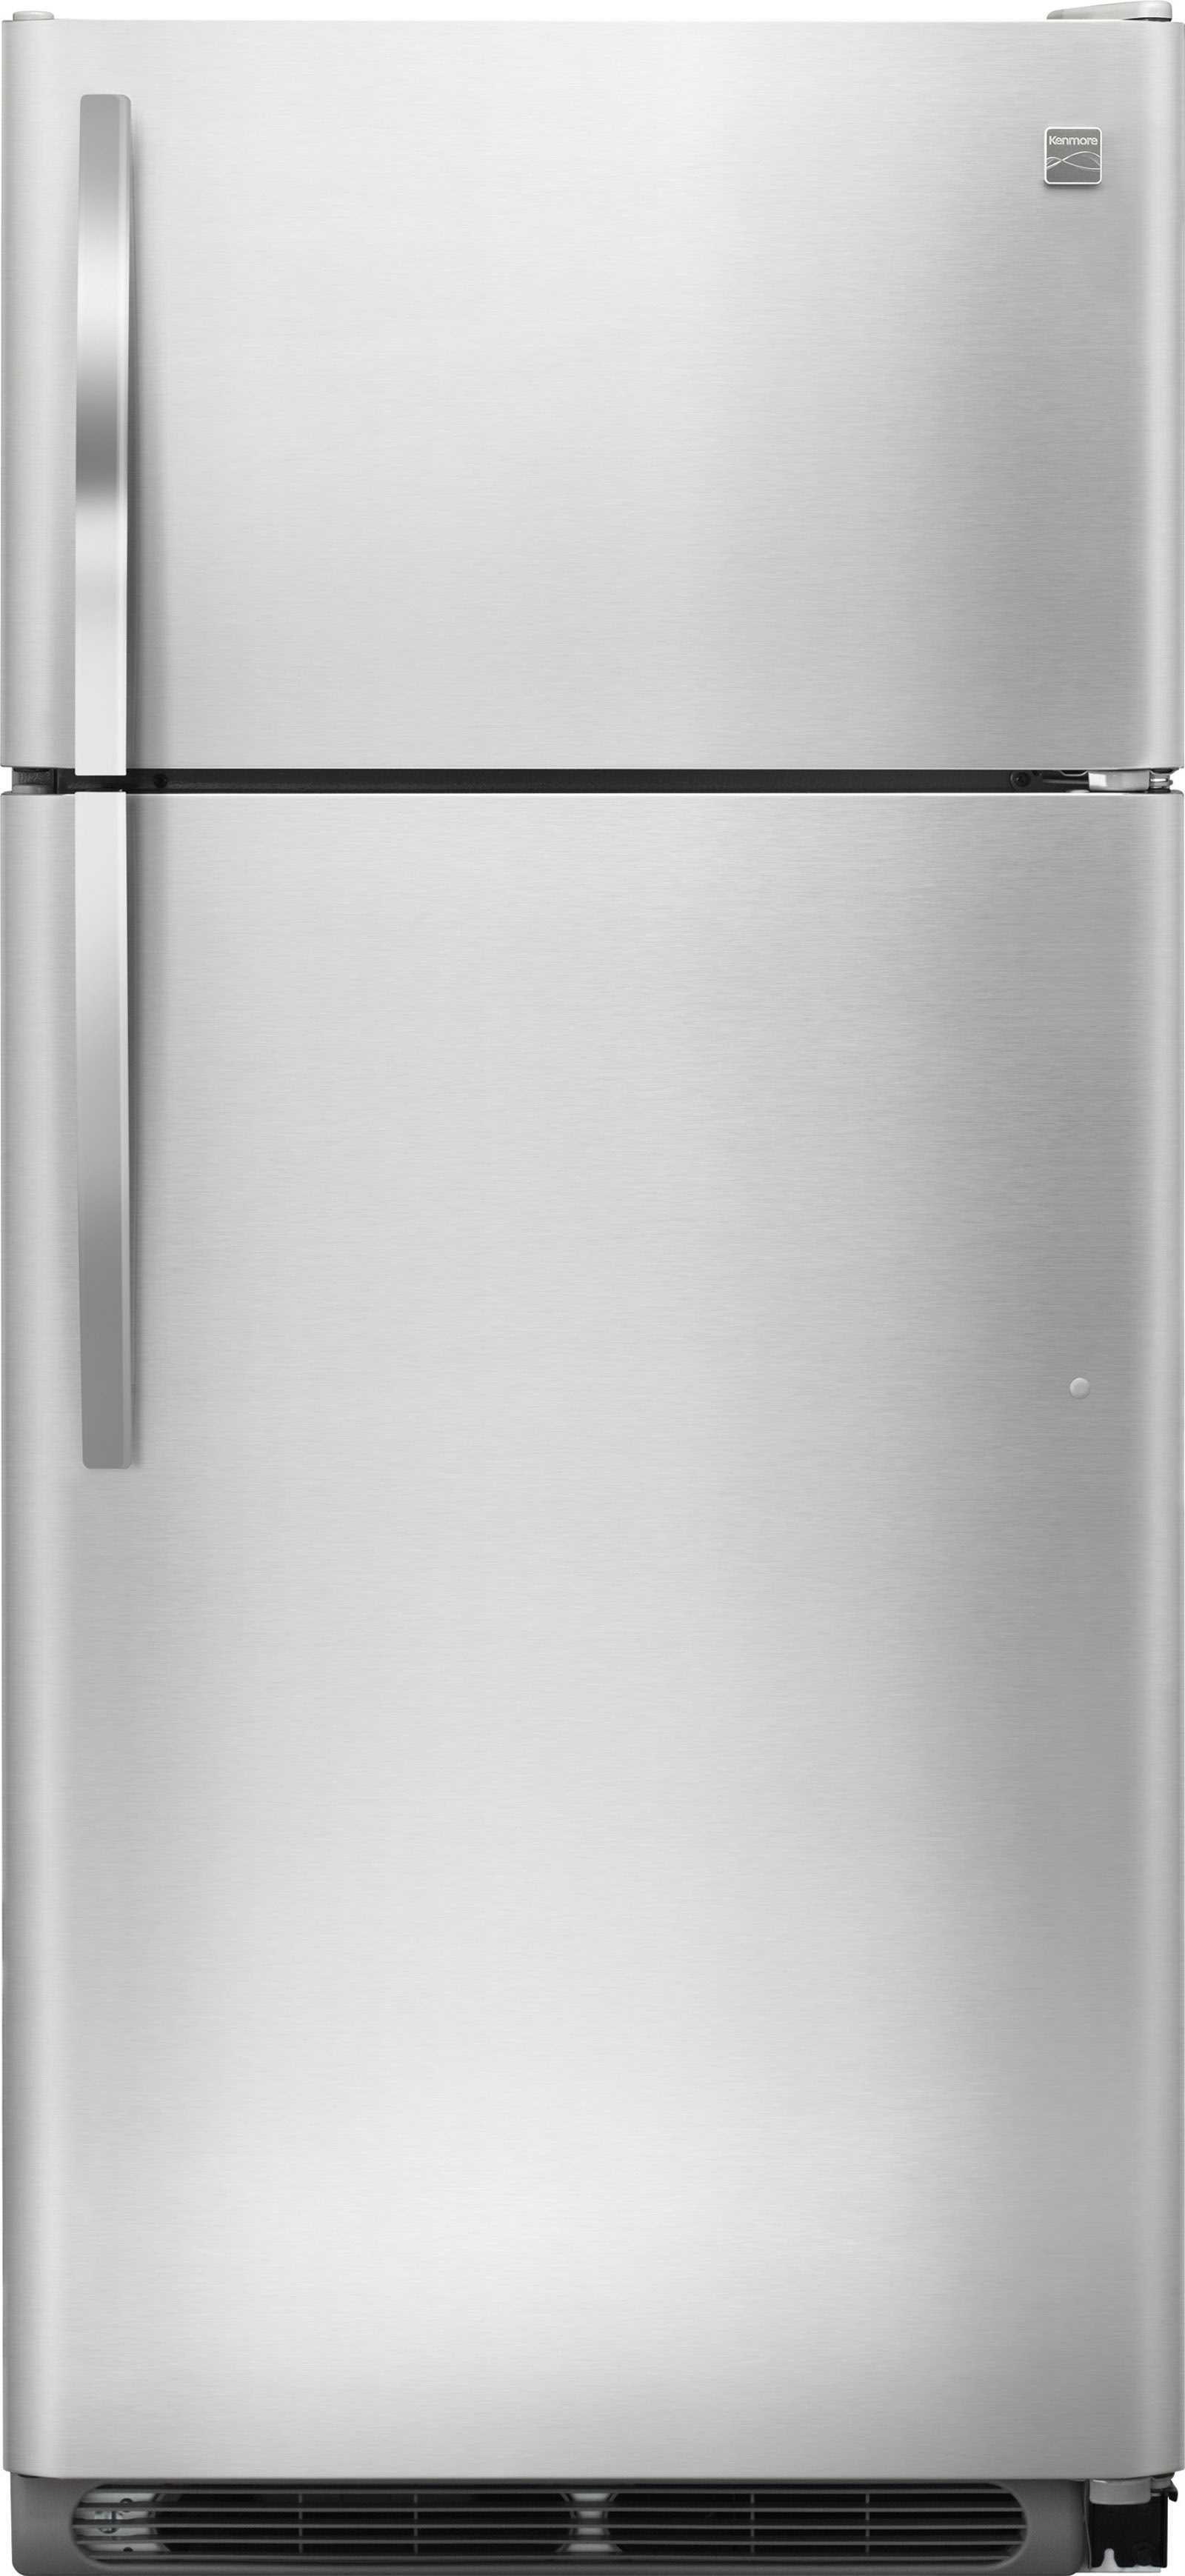 Kenmore 18 cu ft Top Freezer Refrigerator Stainless Steel